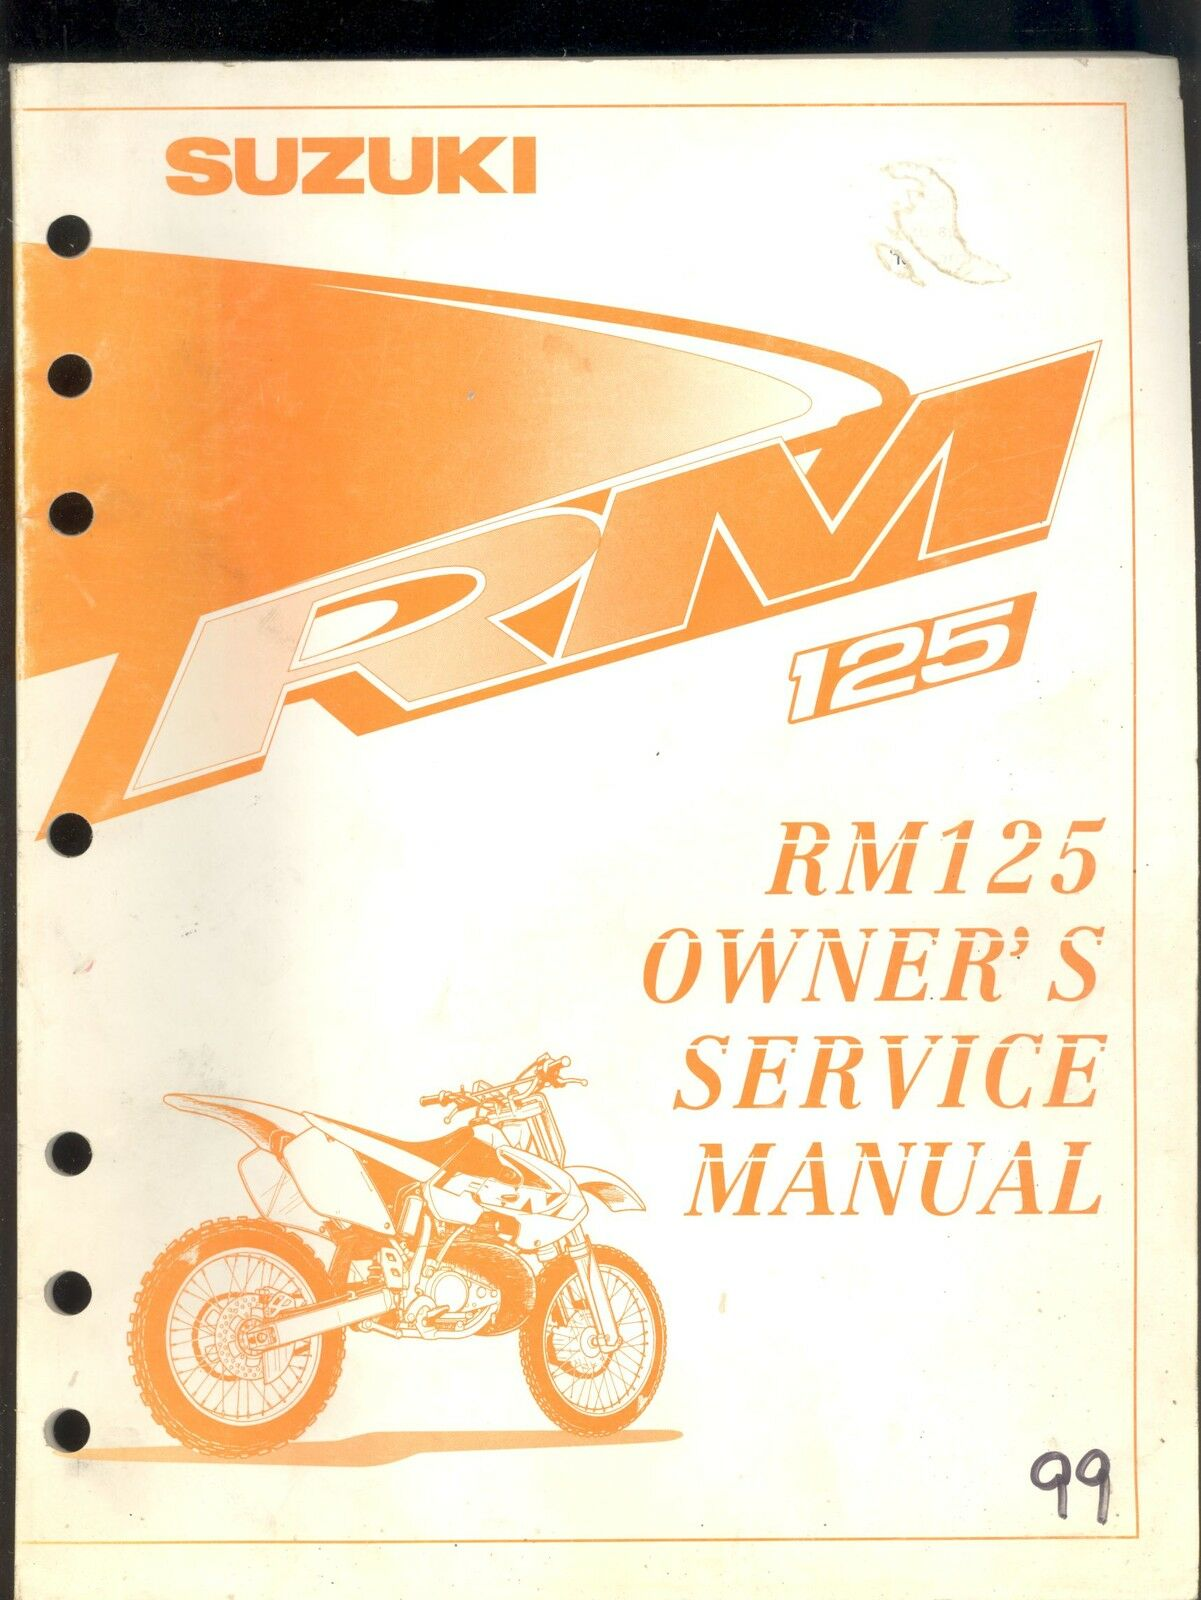 1999 Suzuki Rm125 Motorcycle Owner`s Service Manual 1 of 1Only 1 available  ...